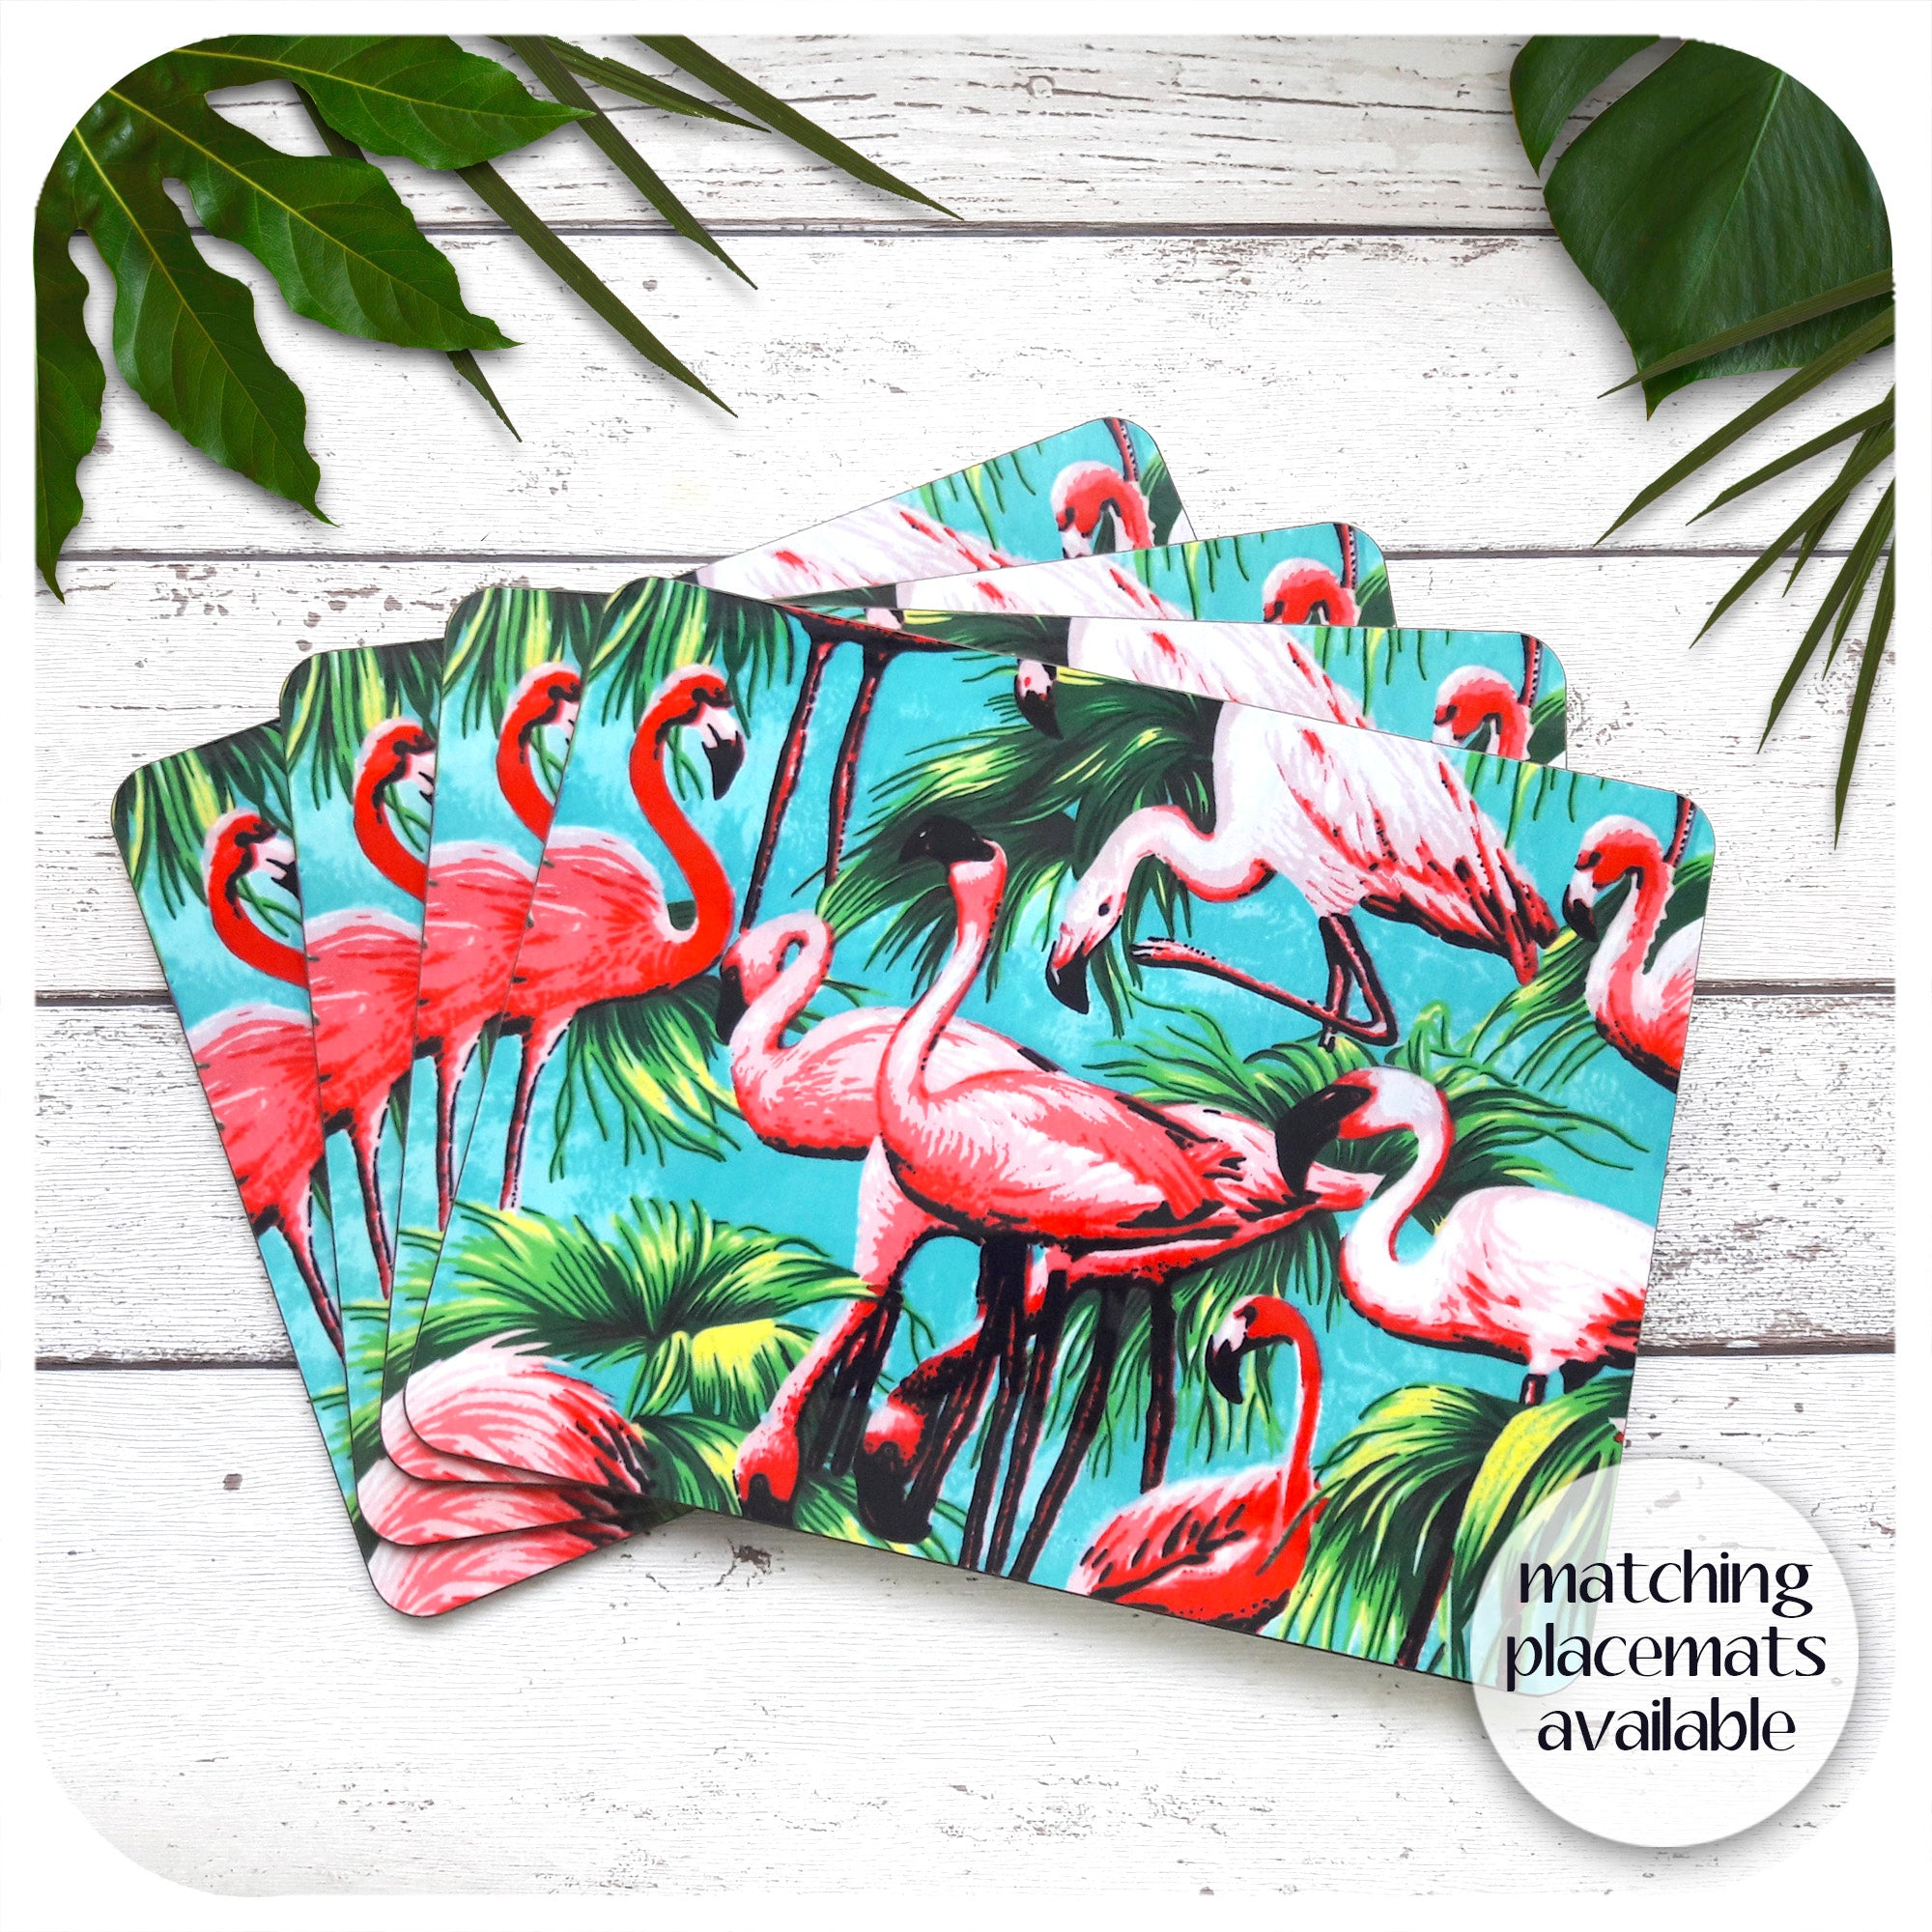 Matching Flamingo Placemats available | The Inkabilly Emporium